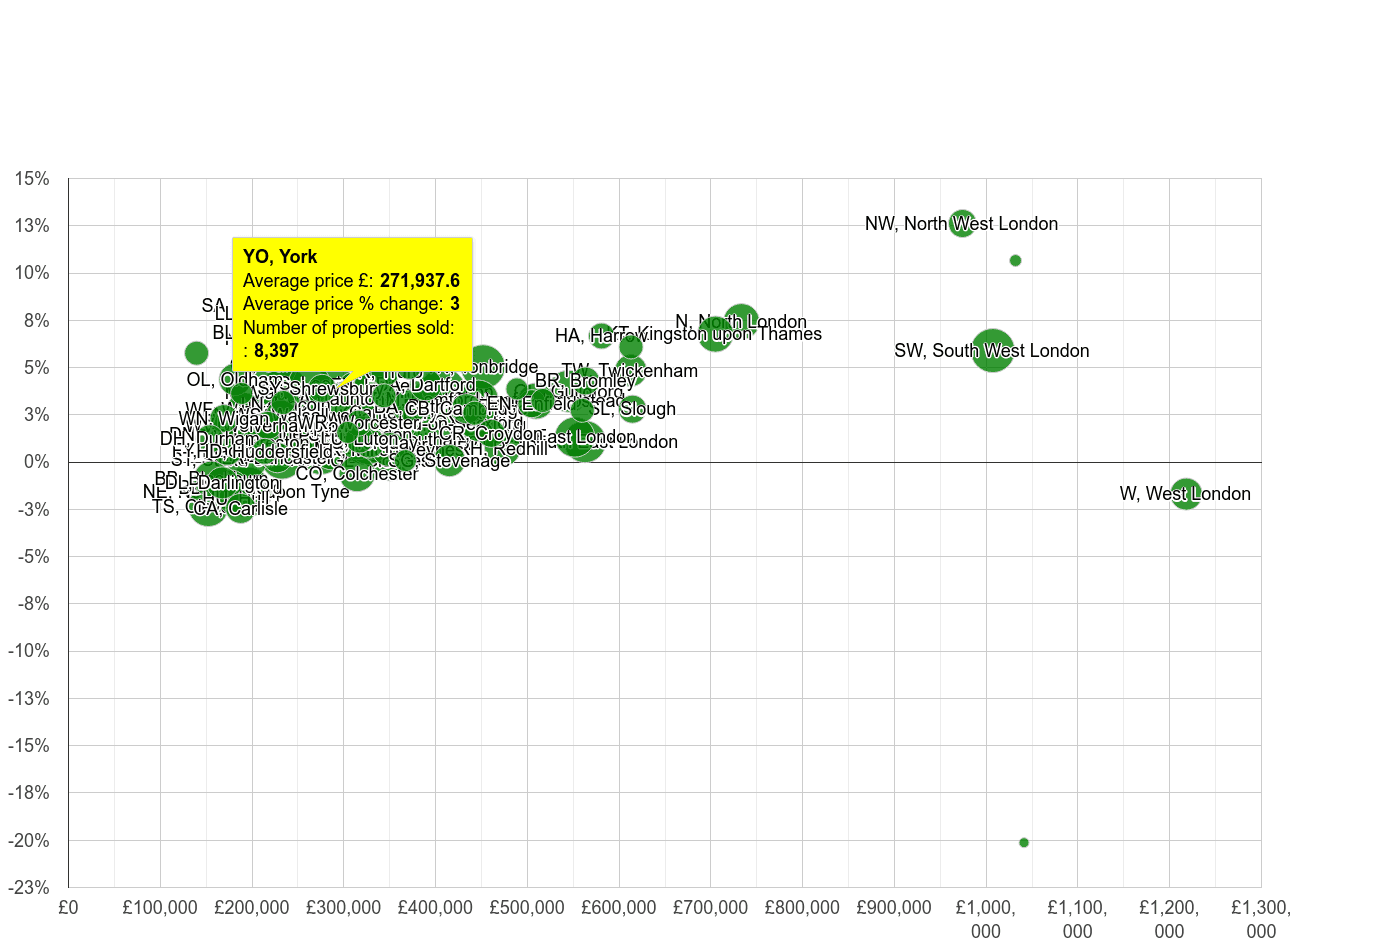 York house prices compared to other areas